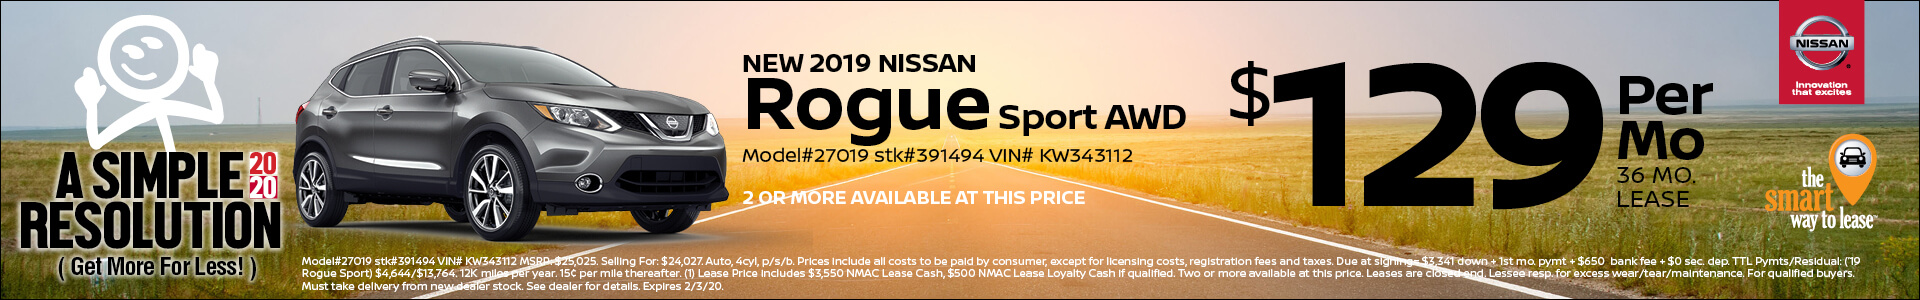 2019 Nissan Rogue Sprt Lease for $129